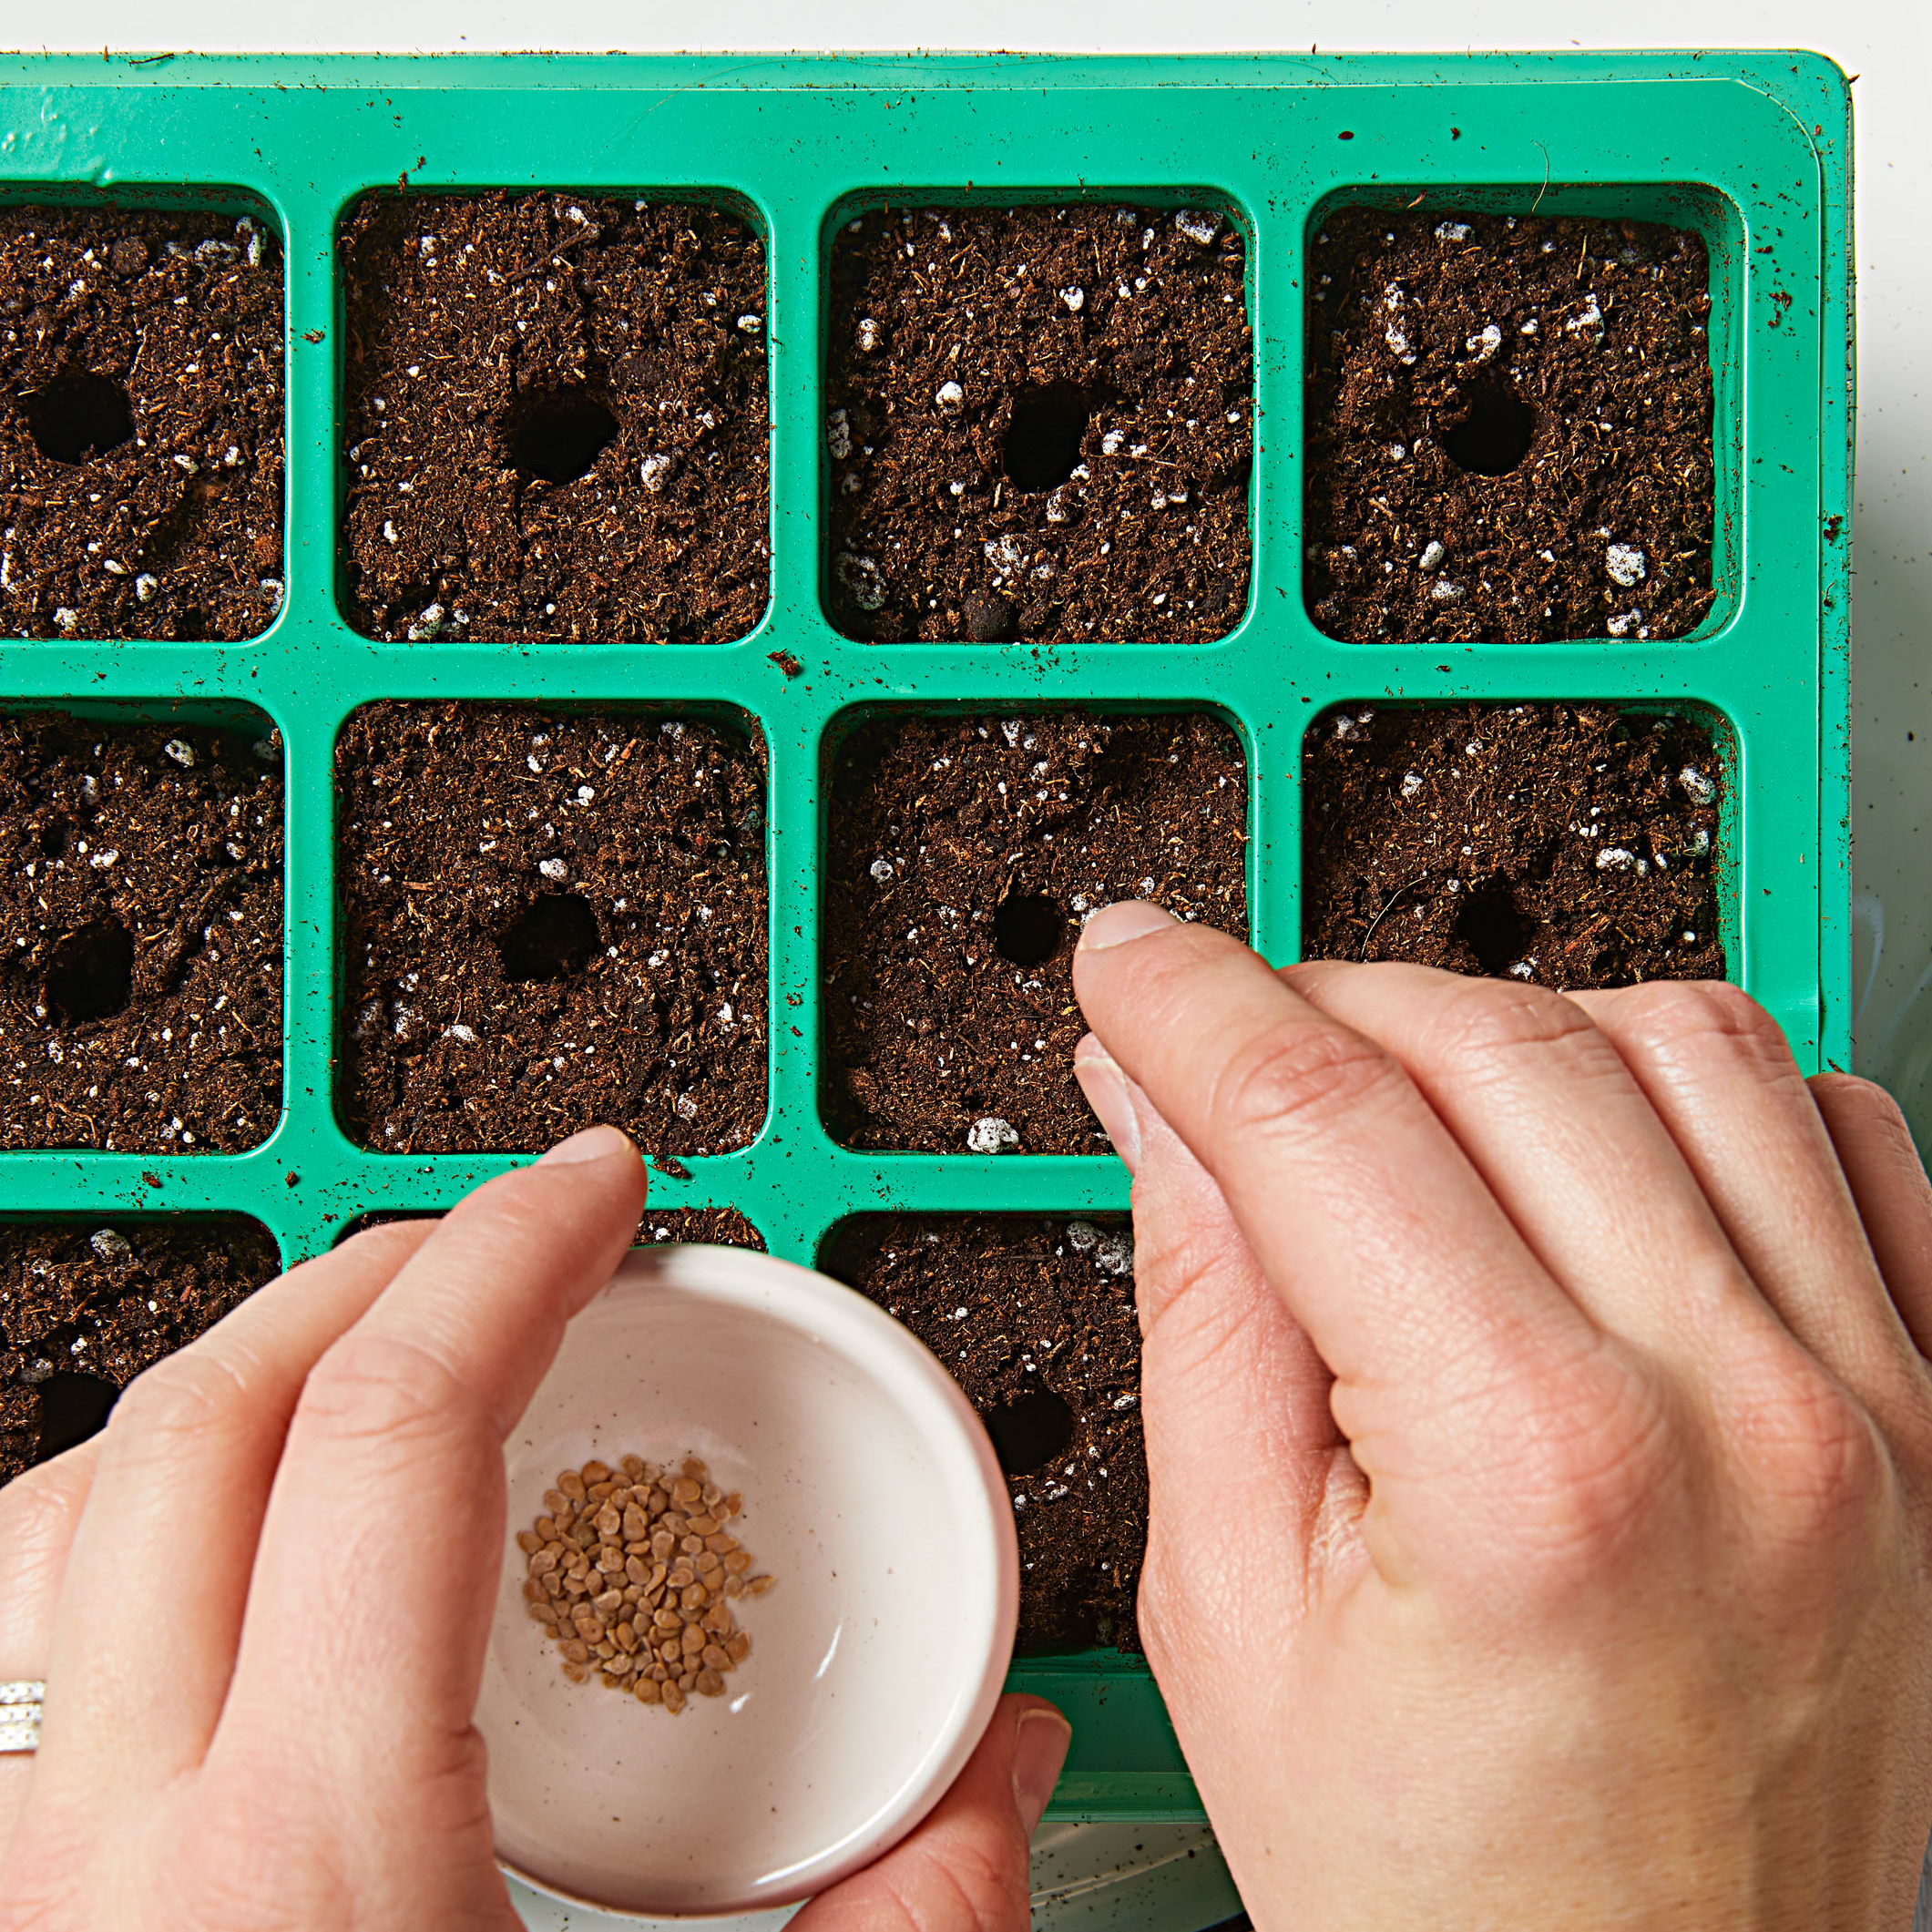 How to start seeds-Step 3